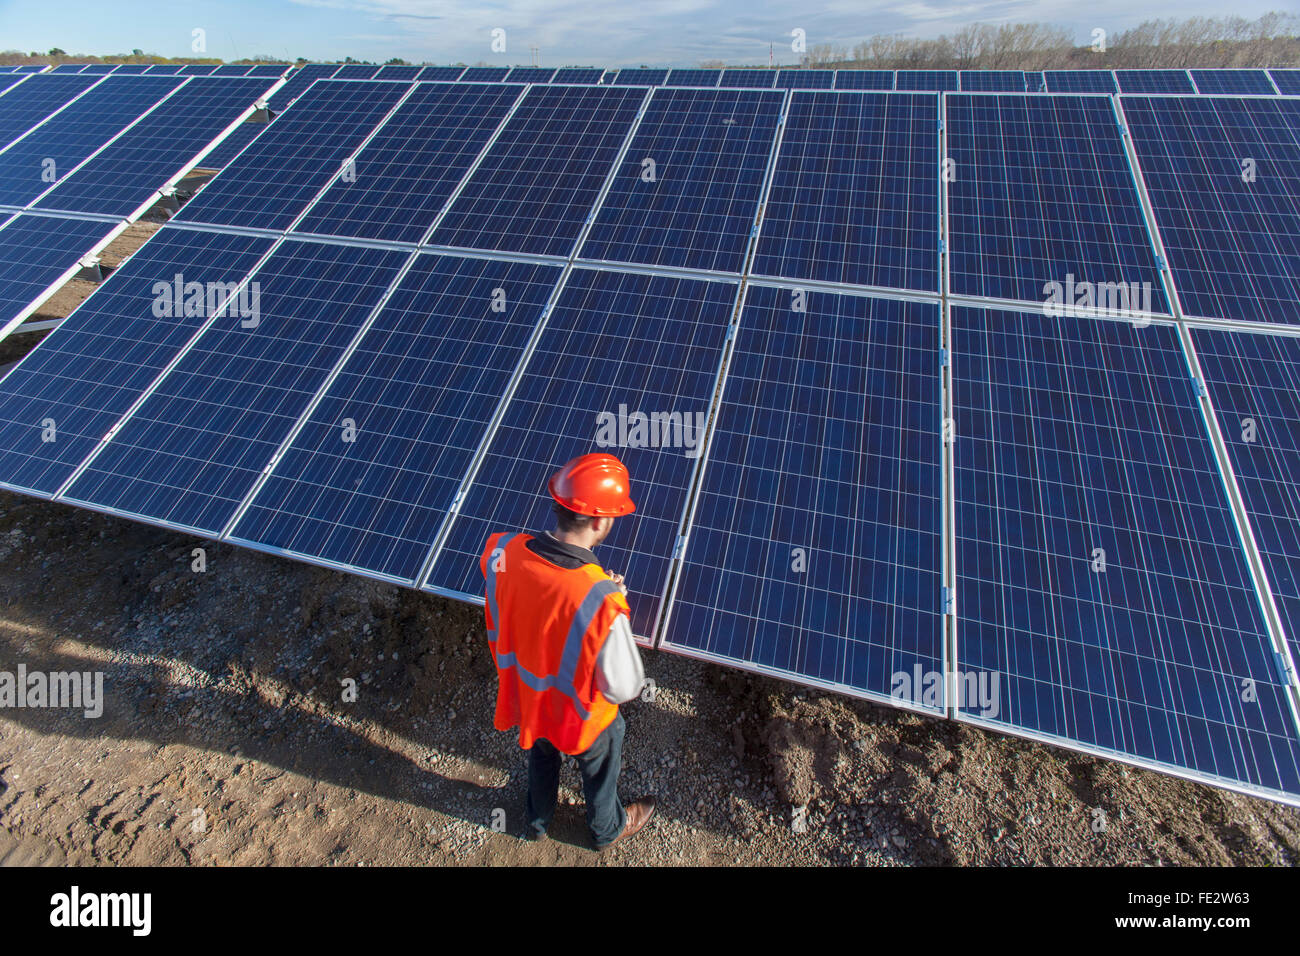 Power engineer looking at surface of panels at solar photovoltaic array - Stock Image